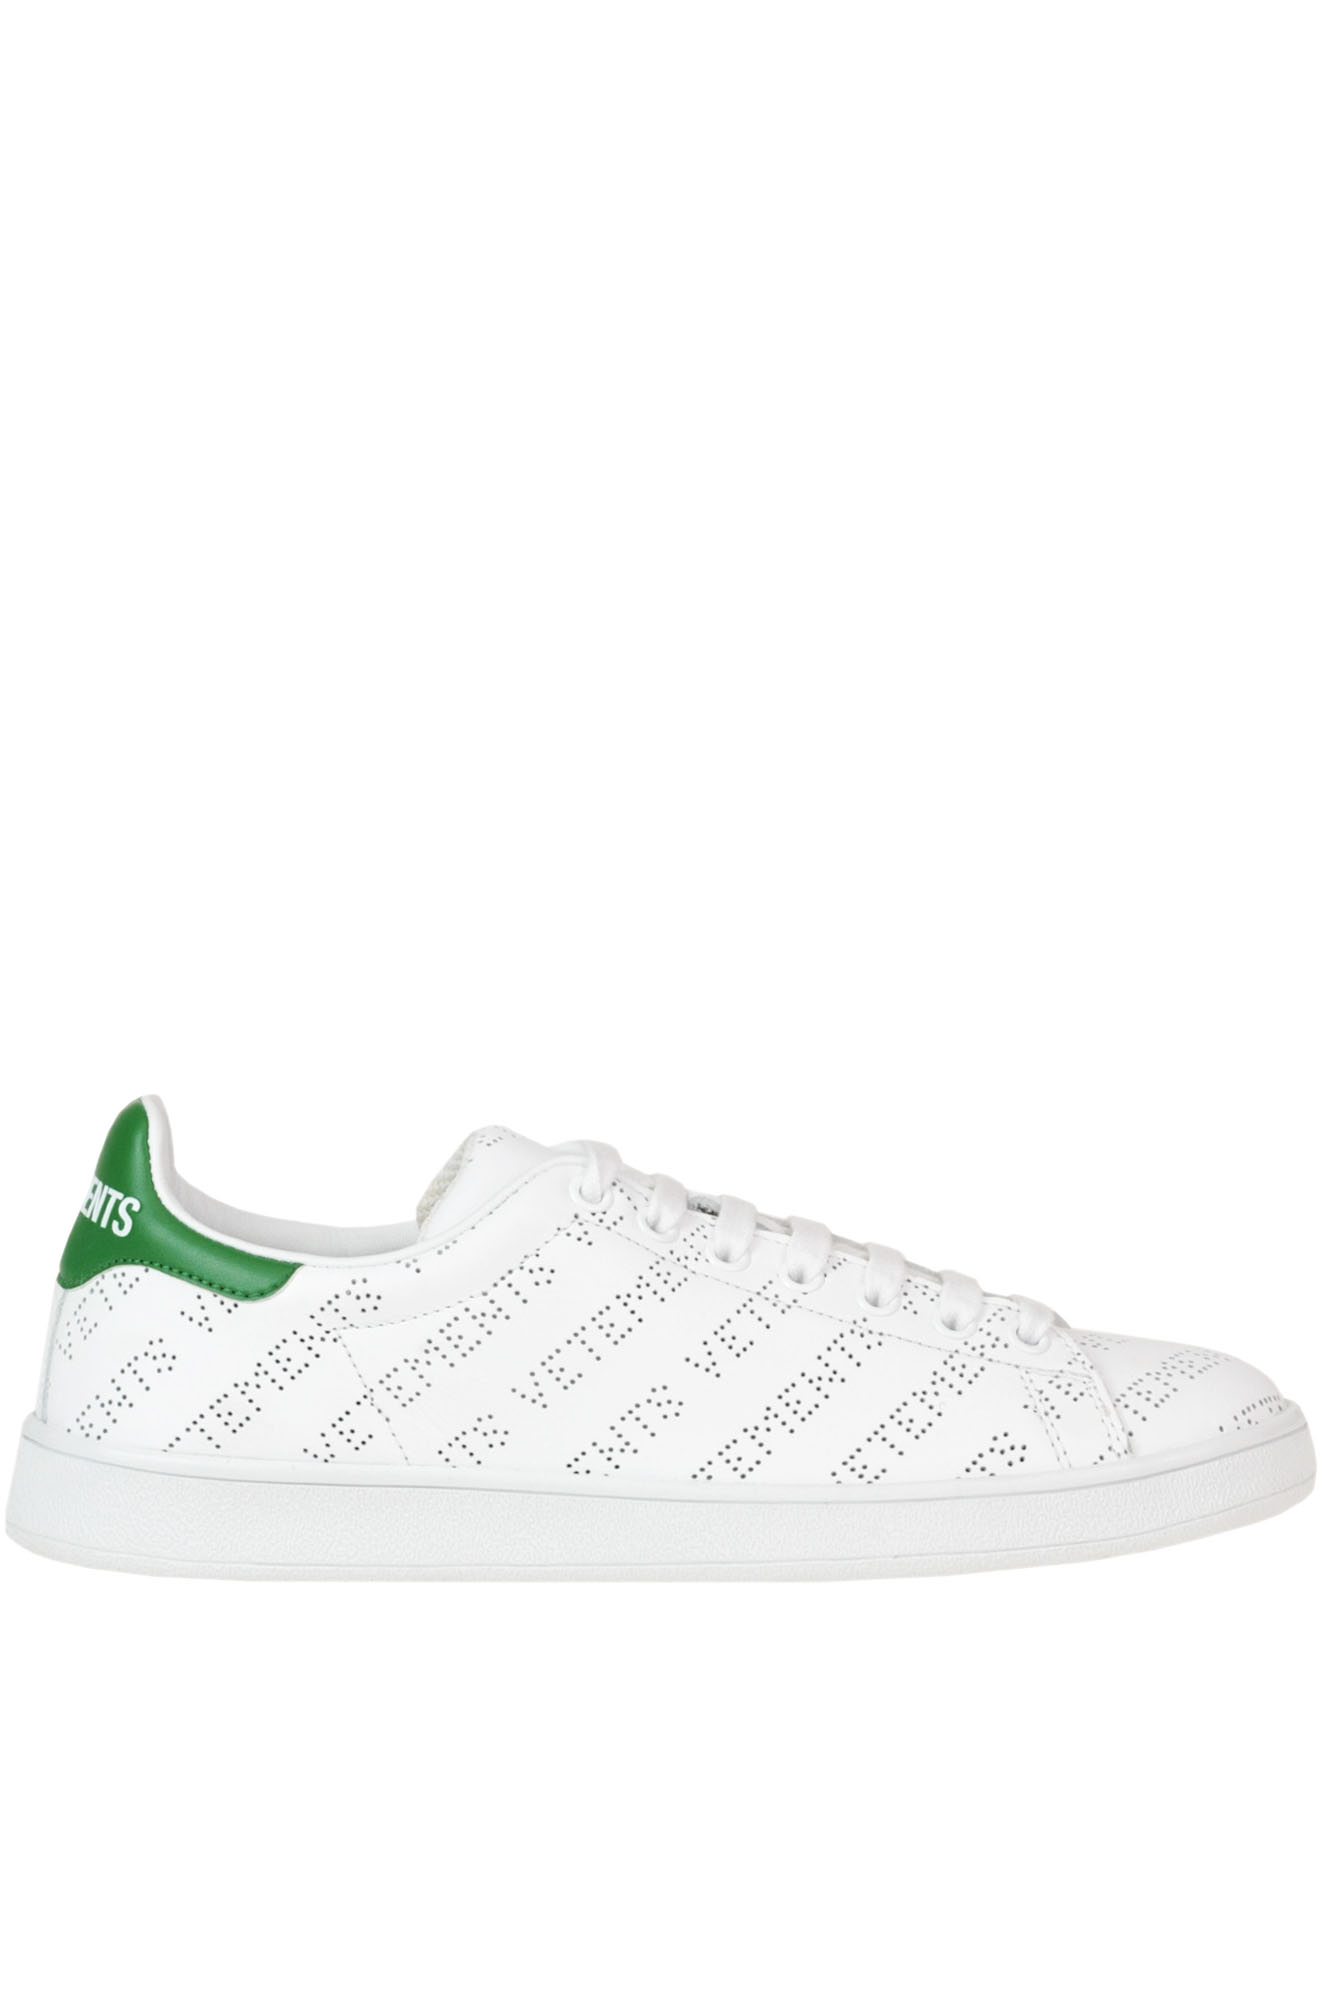 Perforated Designer Logo Leather Sneakers in White